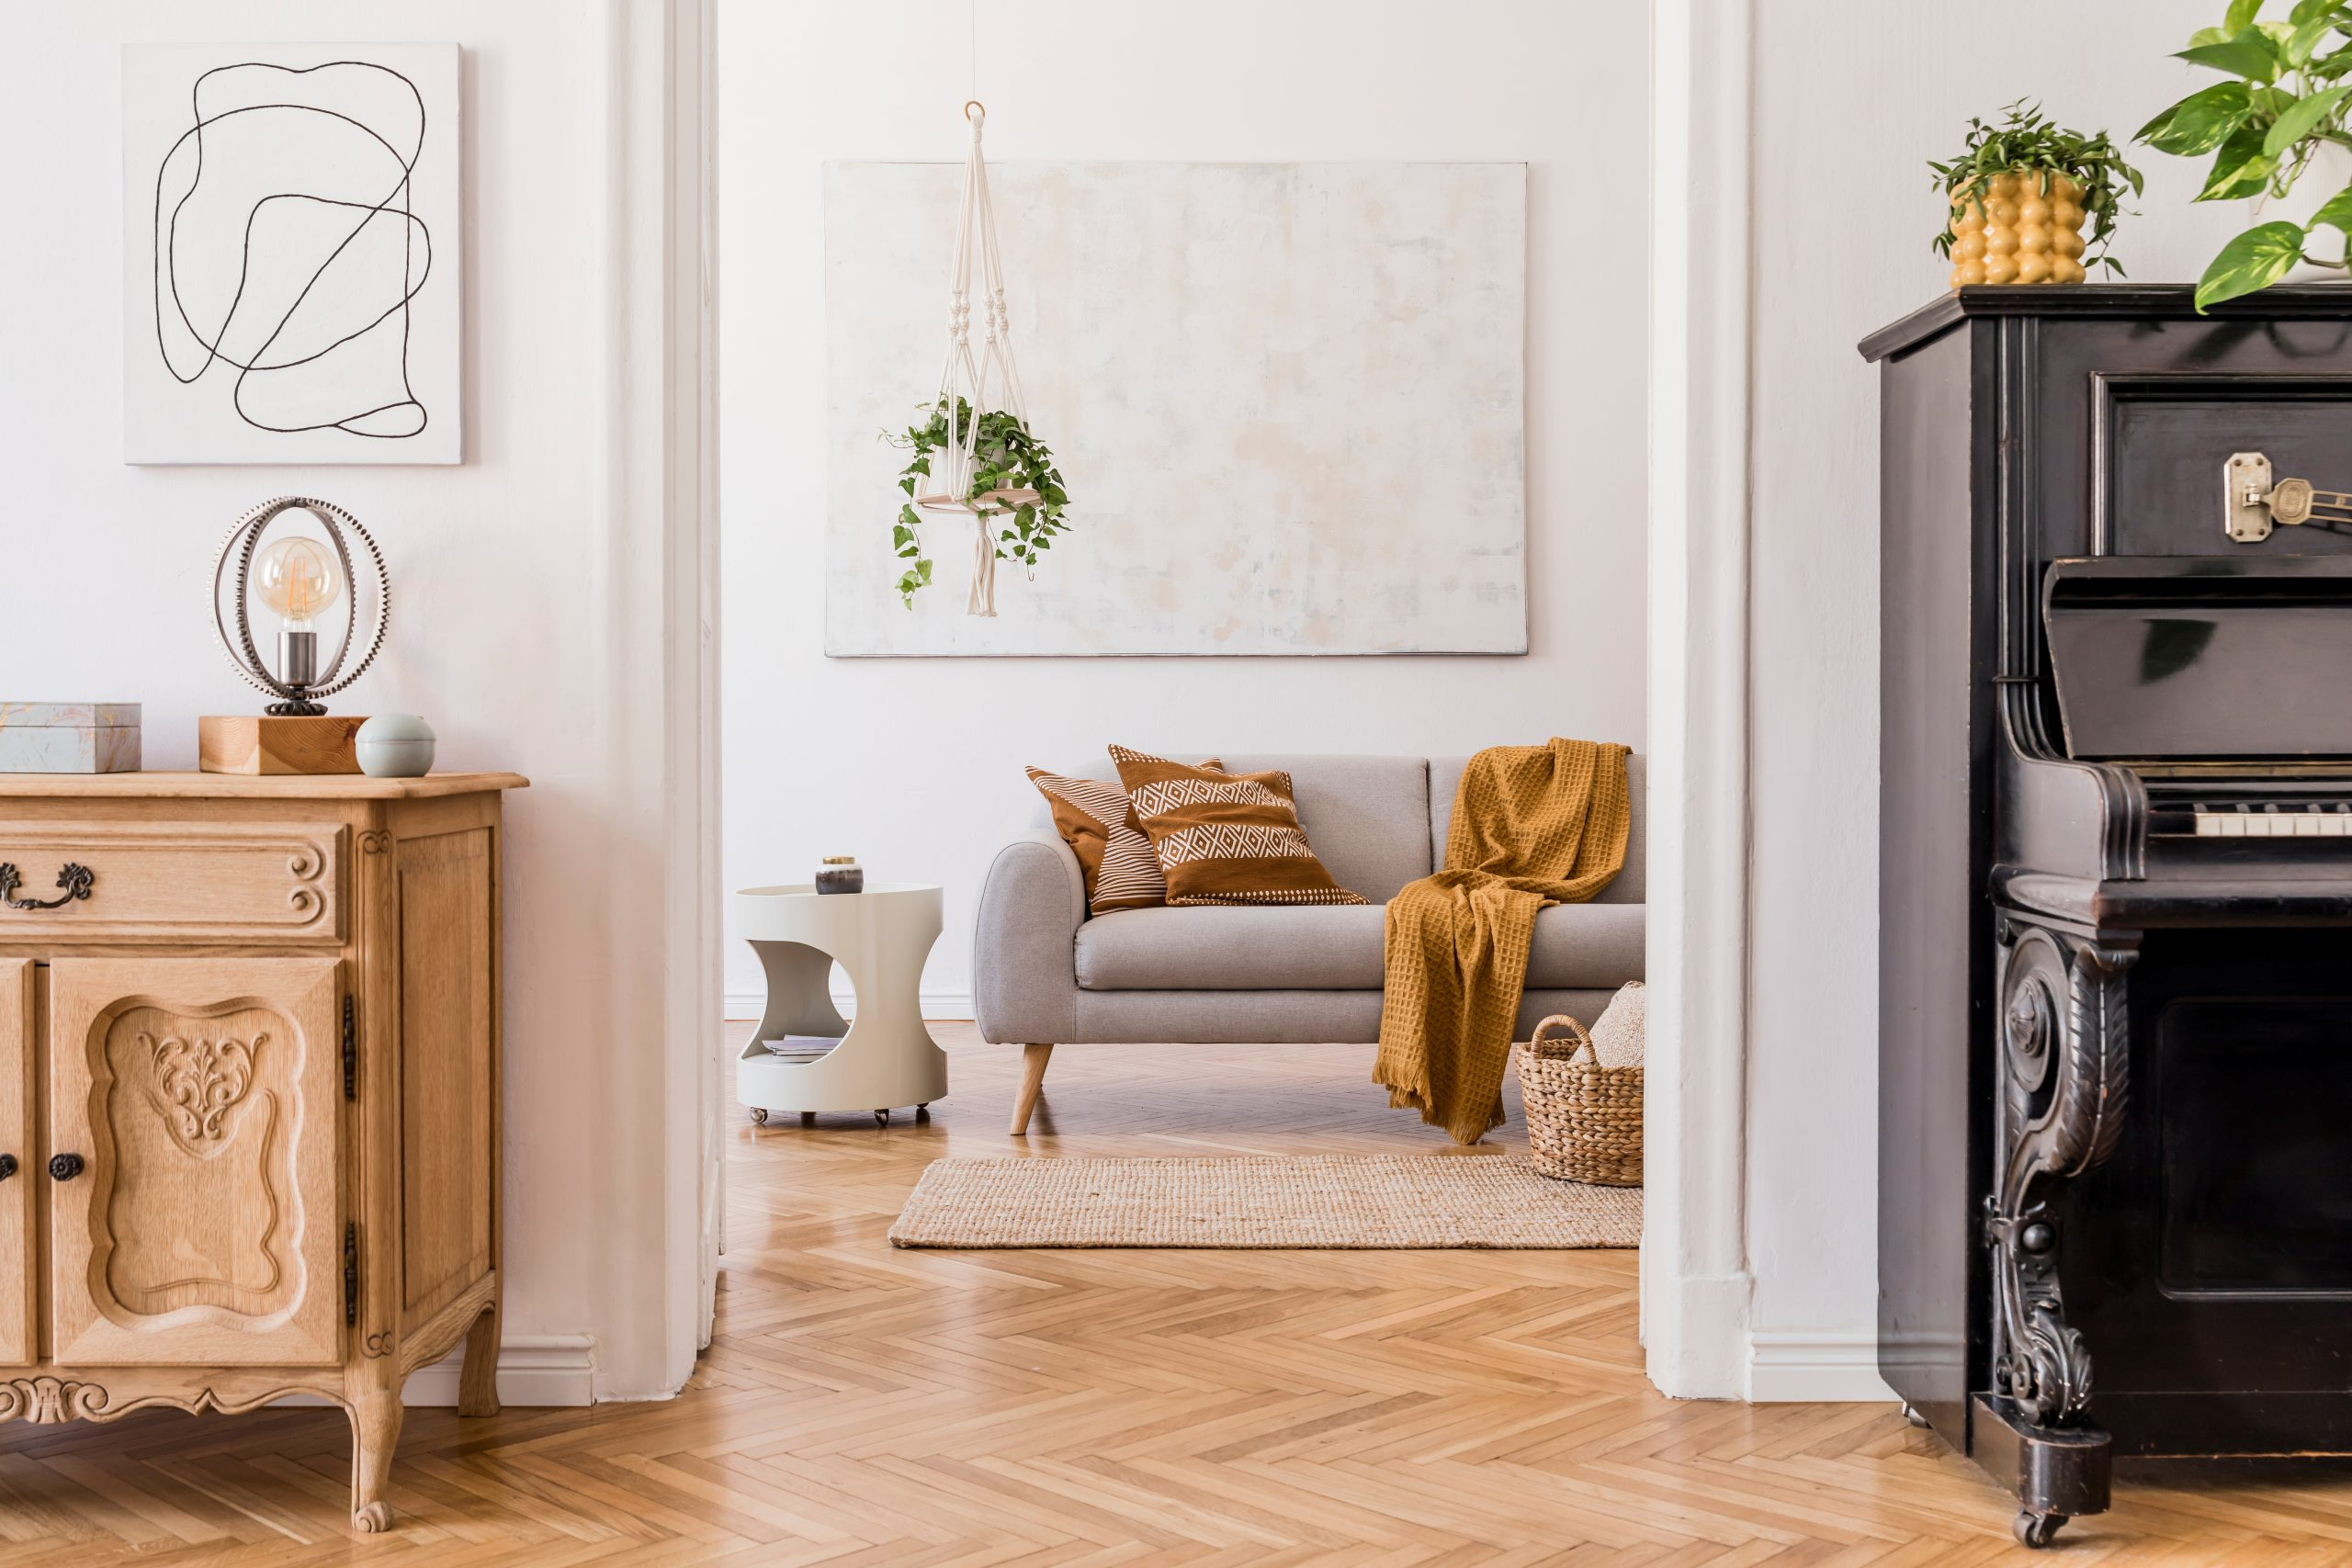 Design homes with handmade furniture and decorative